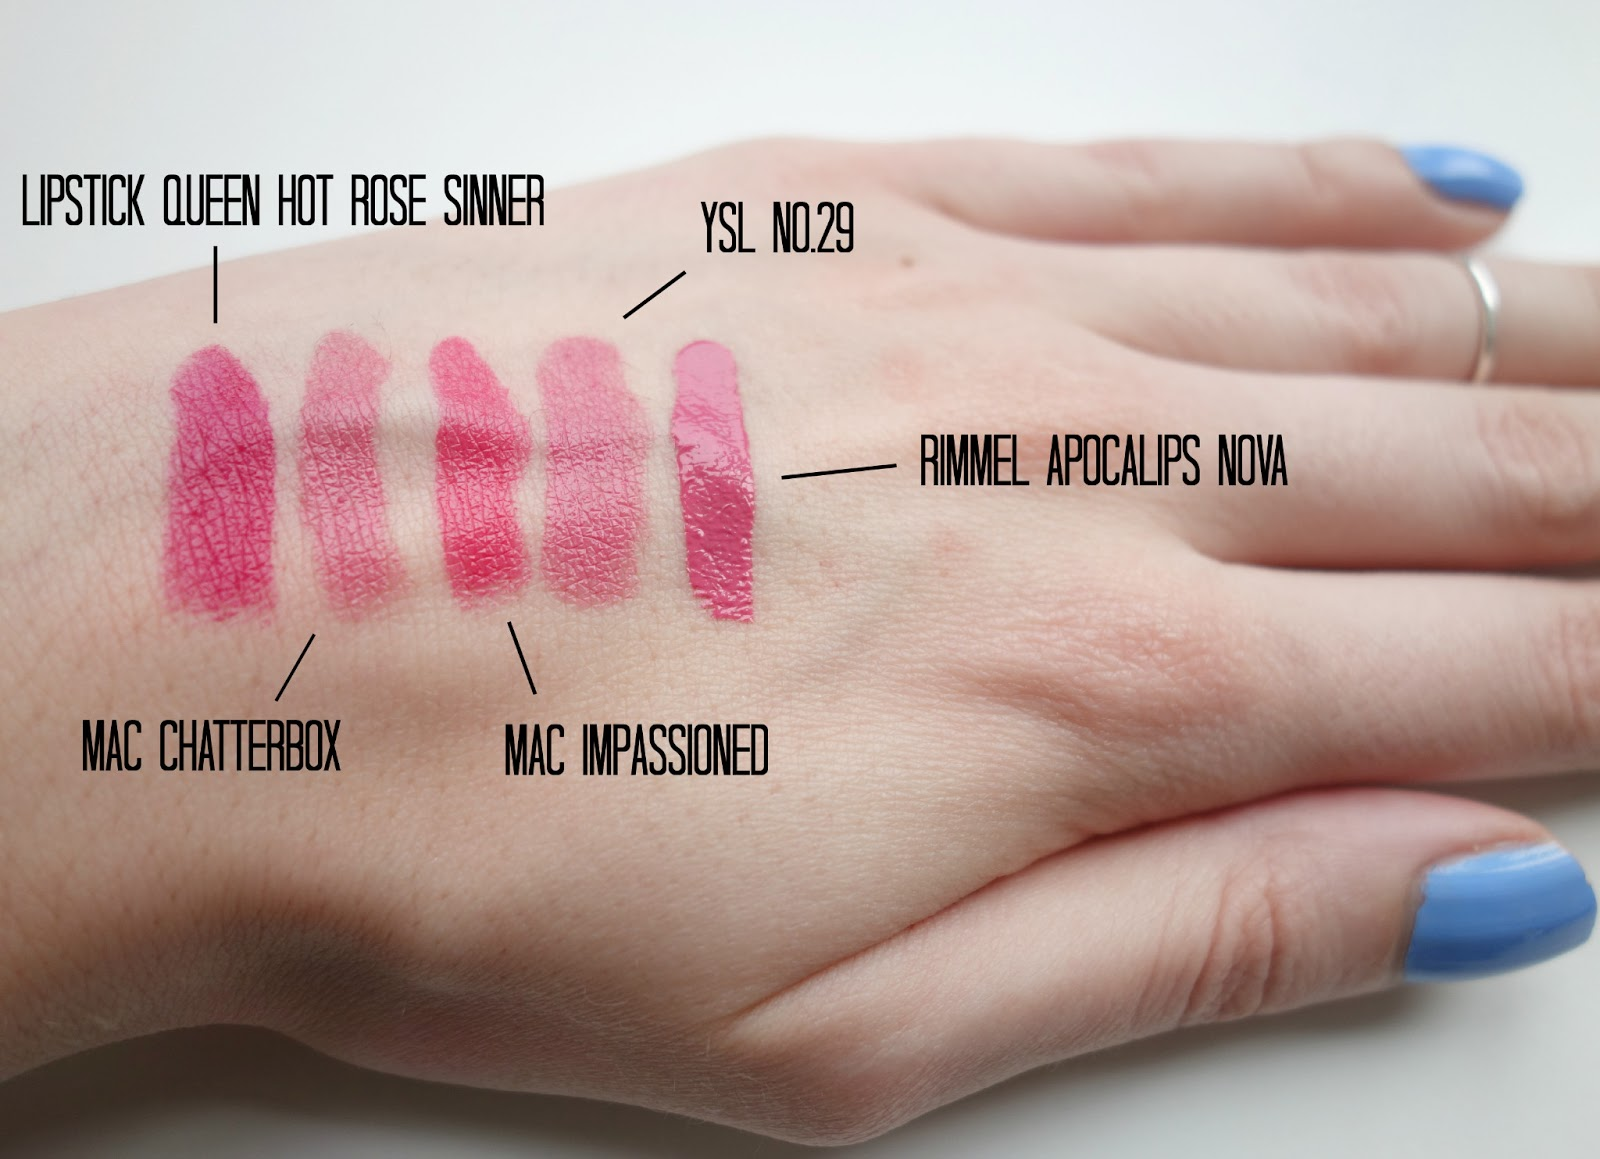 lipstick queen hot rose sinner, mac chatterbox, mac impassioned, ysl rouge volupte no 29 rose opera, rimmel apocalips nova